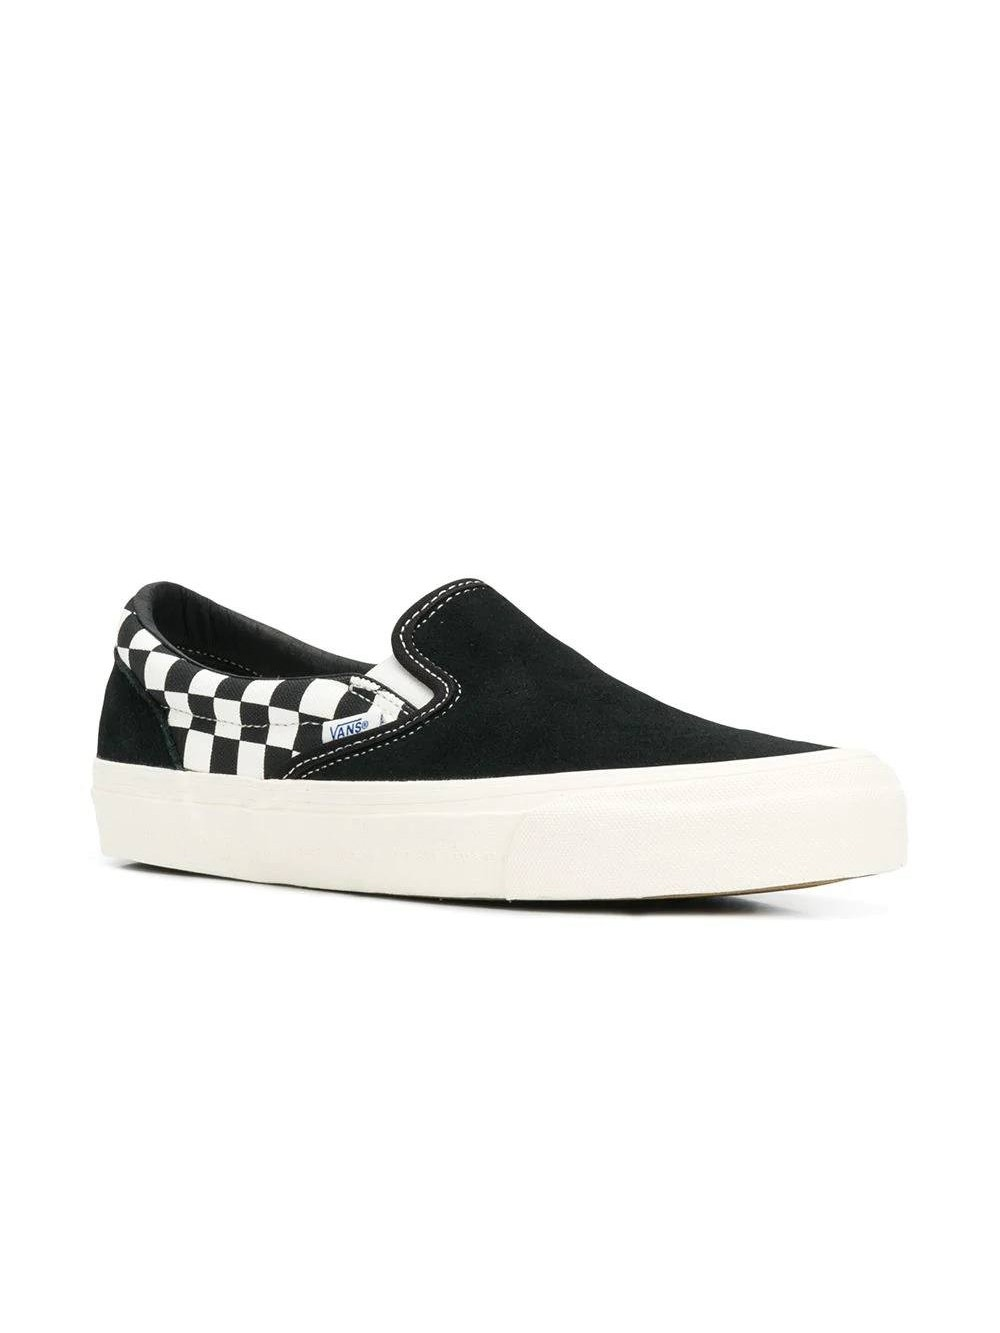 Vans Checkered Slip on Sneakers | The Webster